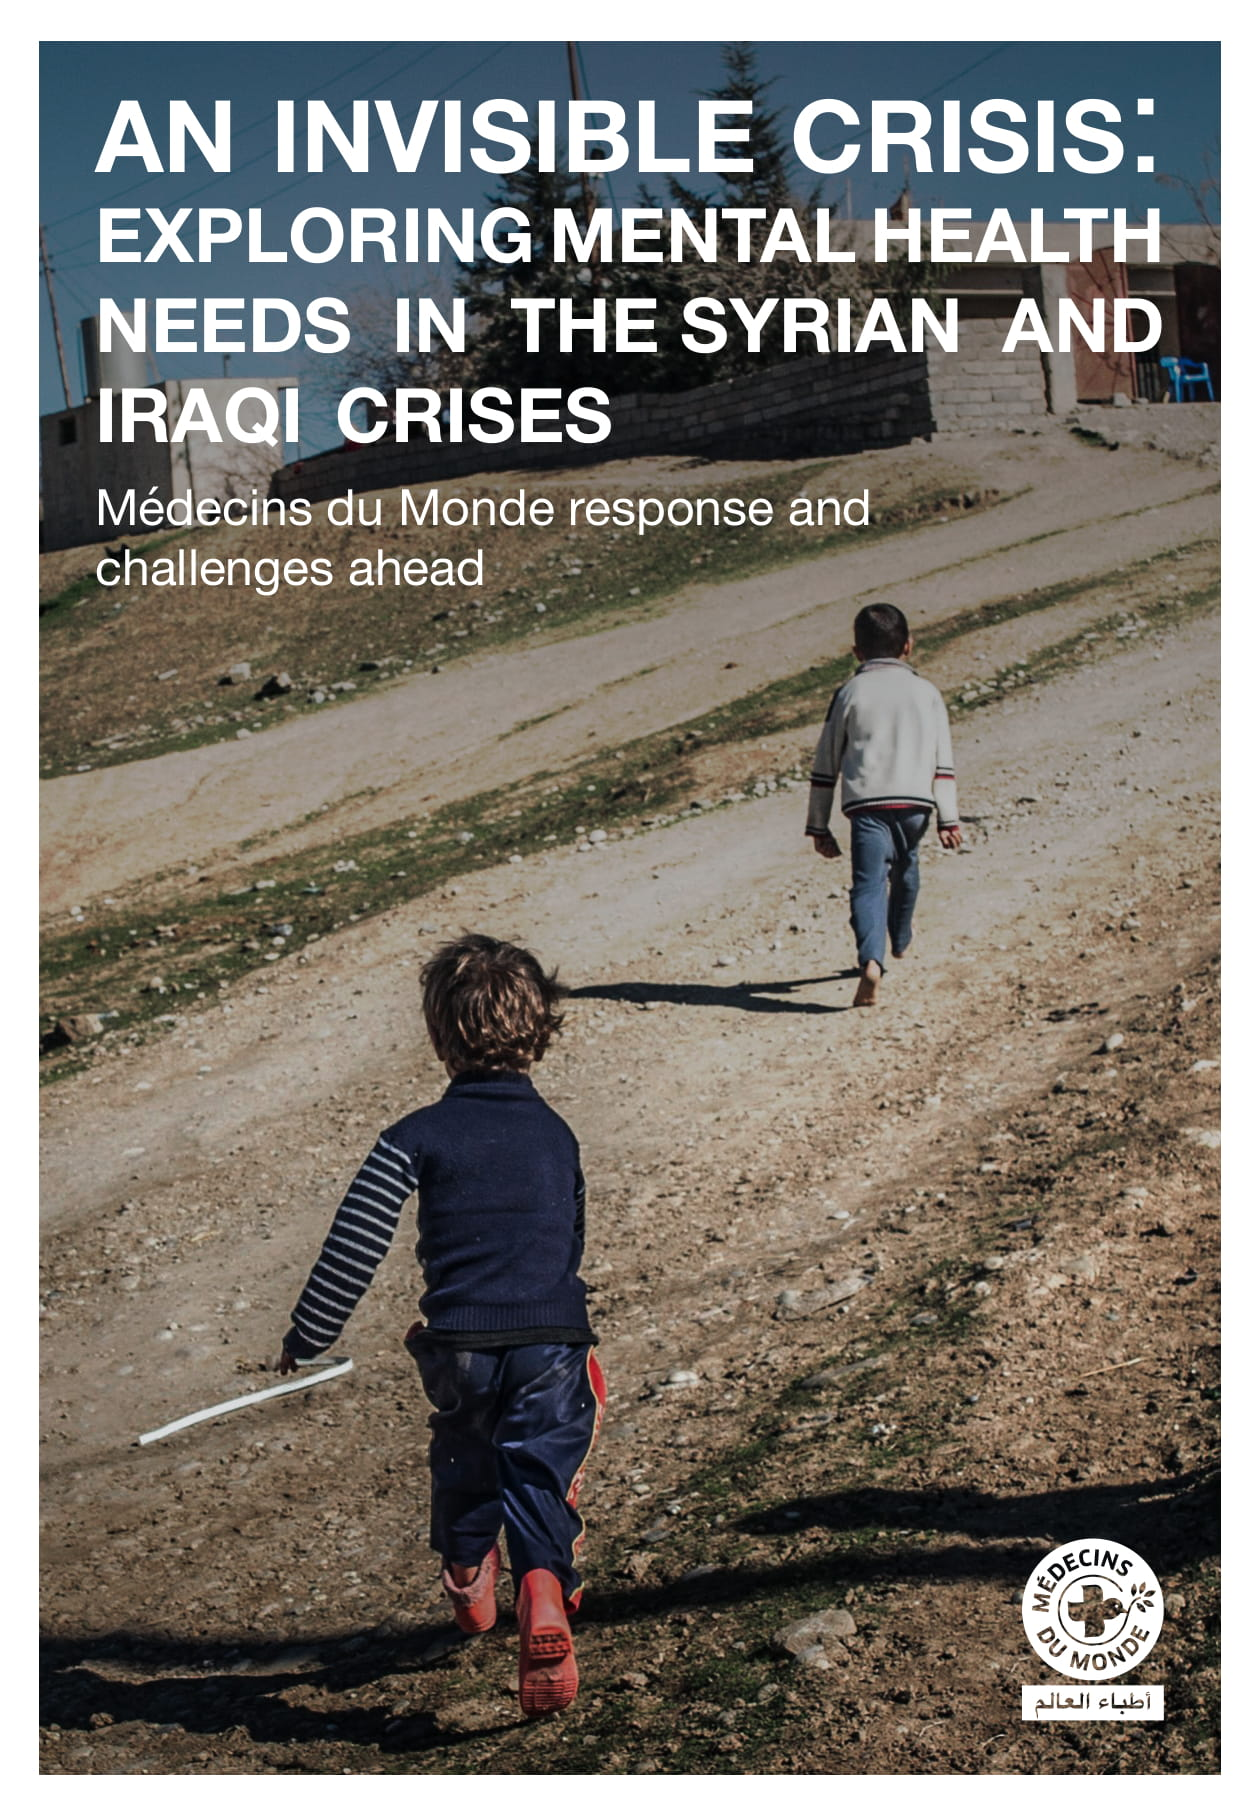 World Mental Health Day: An invisible crisis prevails in Syria and Iraq